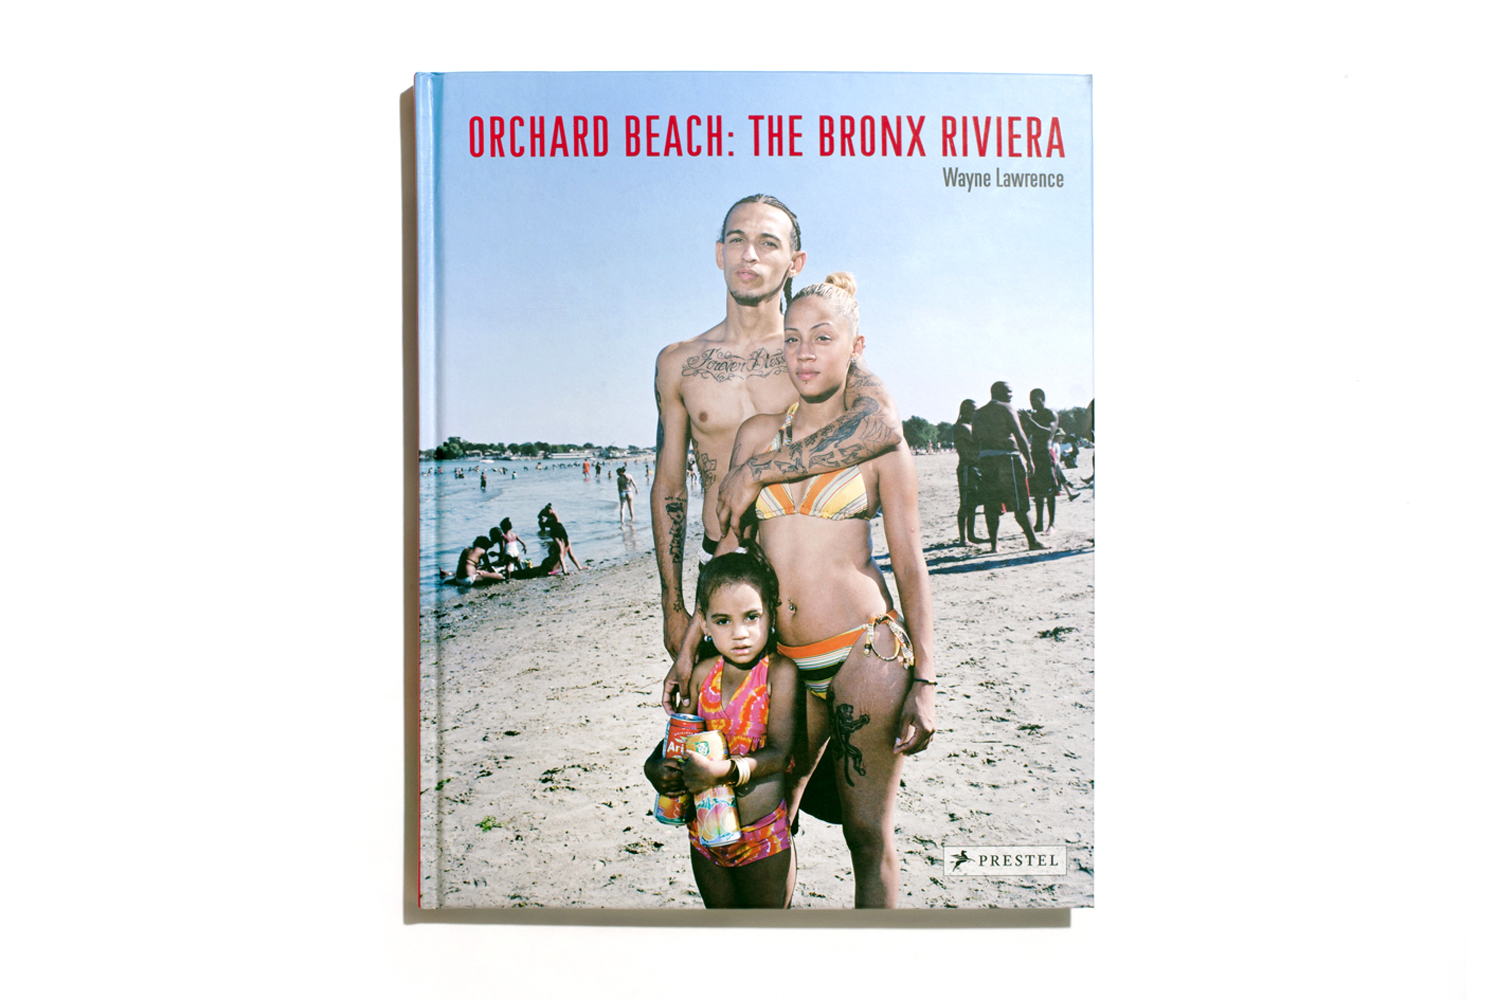 Orchard Beach: The Bronx Riviera by Wayne Lawrence, published by Prestel, selected by Marie Tobias, associate photo editor at TIME.